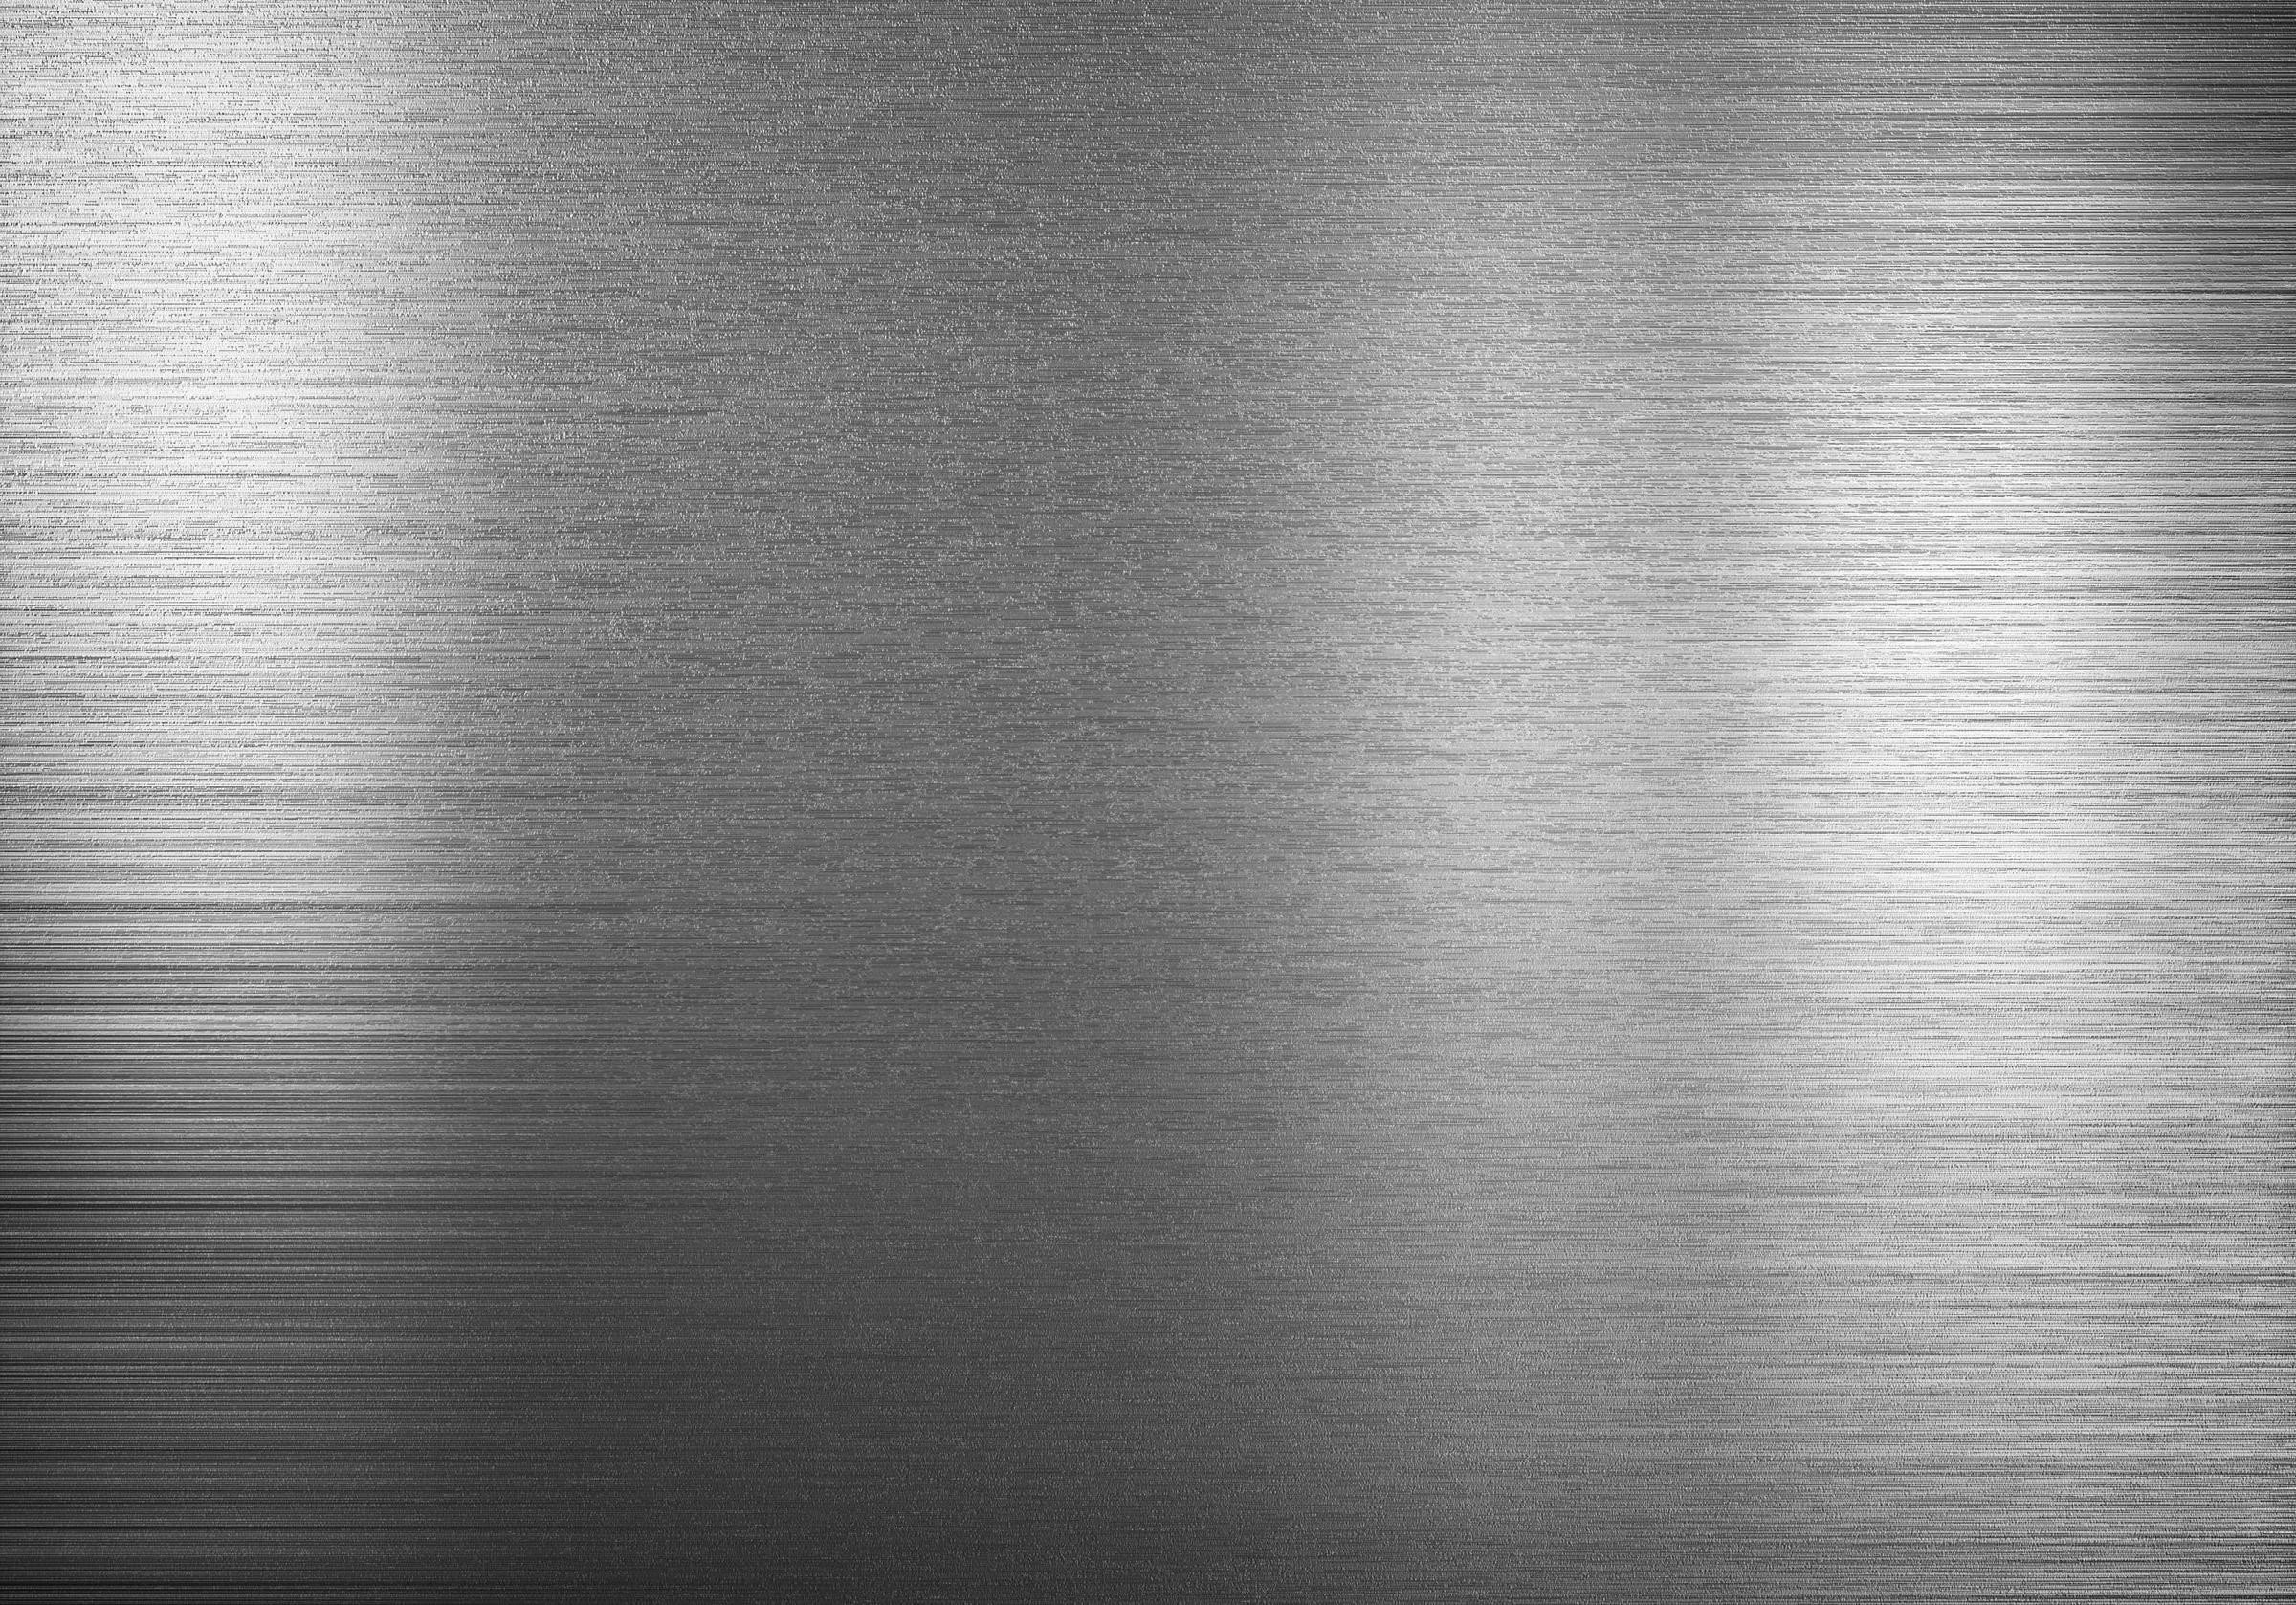 Silver Metallic Wallpaper Picture designs and Information